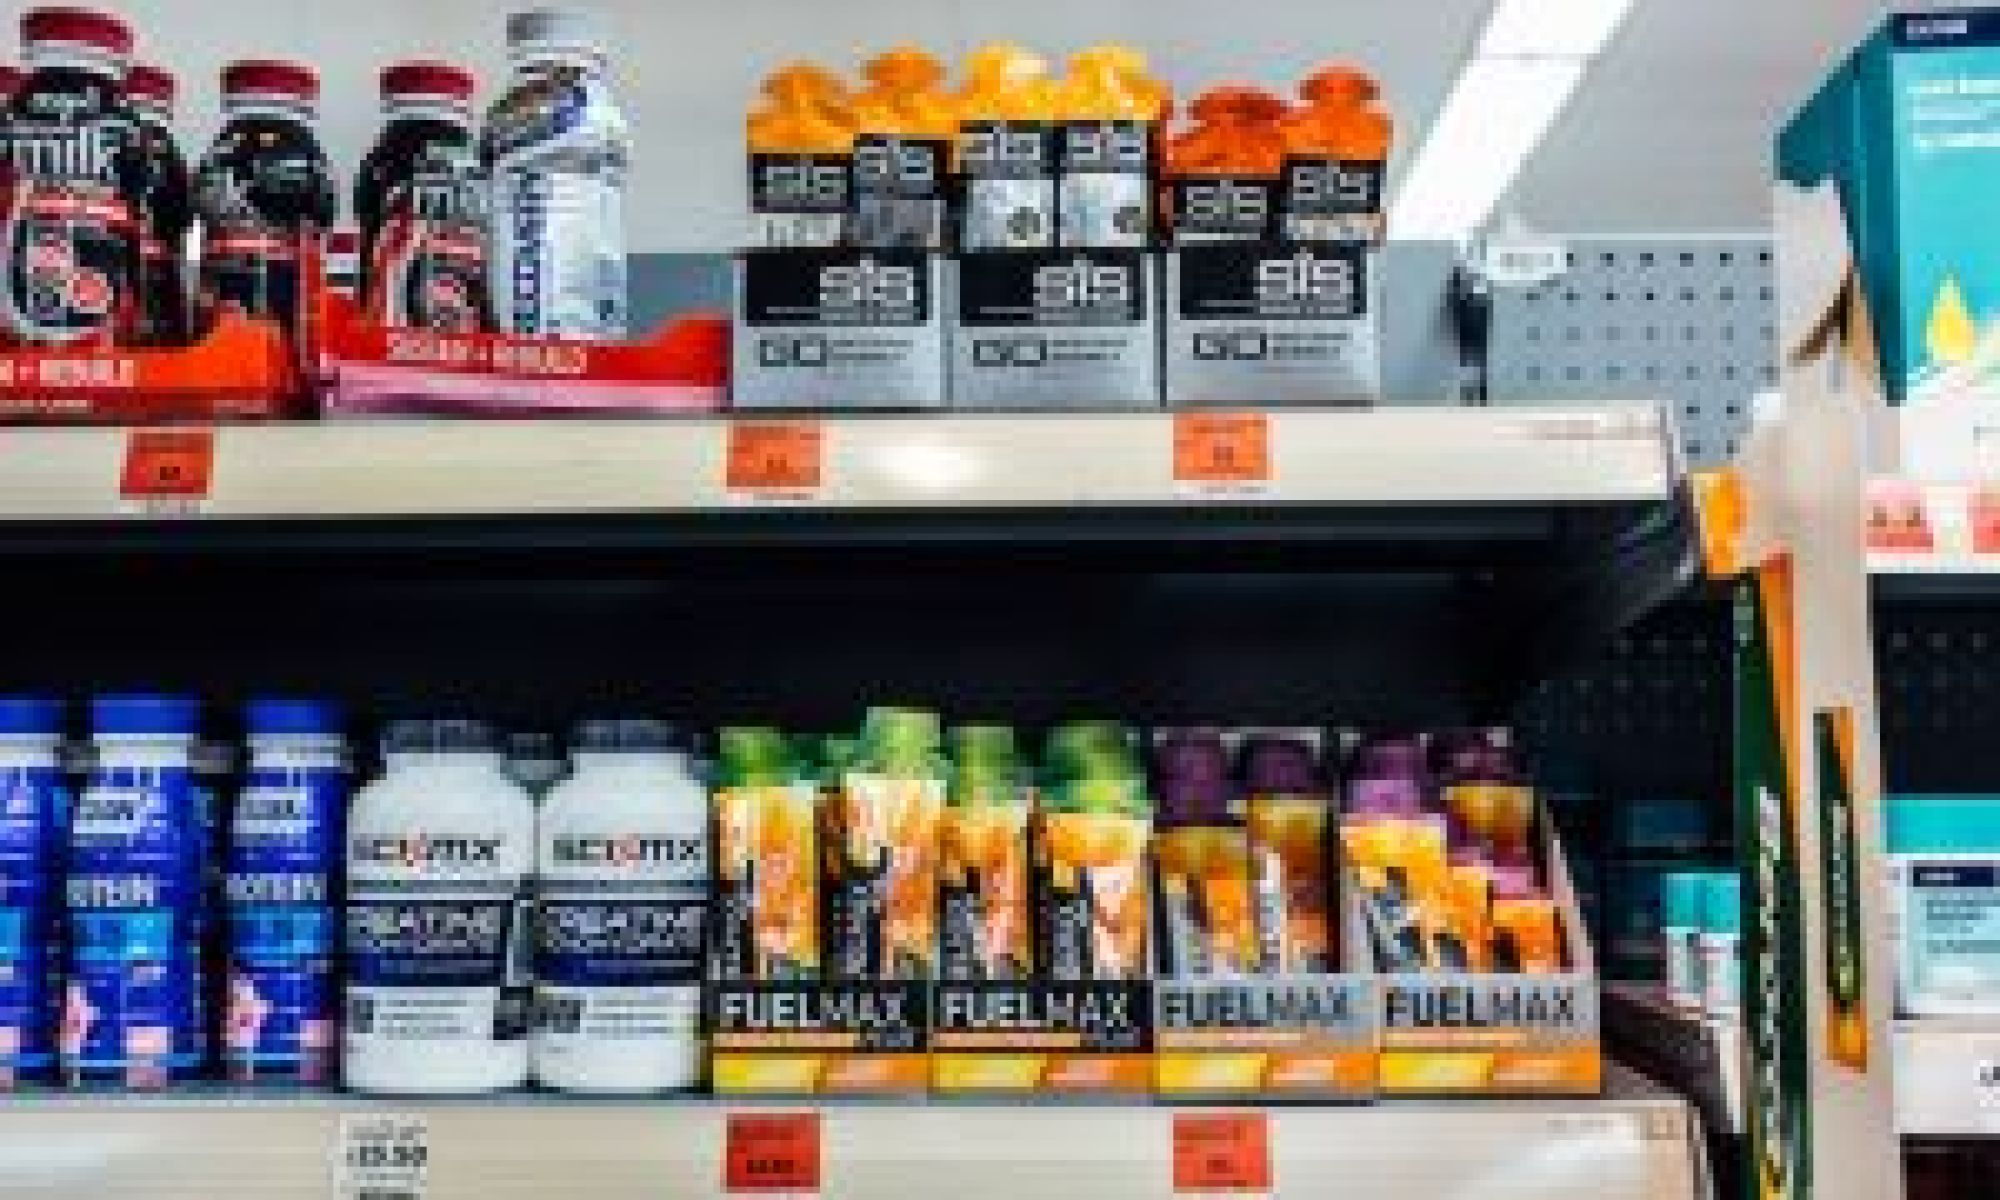 Sports supplements: do you take them and what are your thoughts? Tell us in our survey